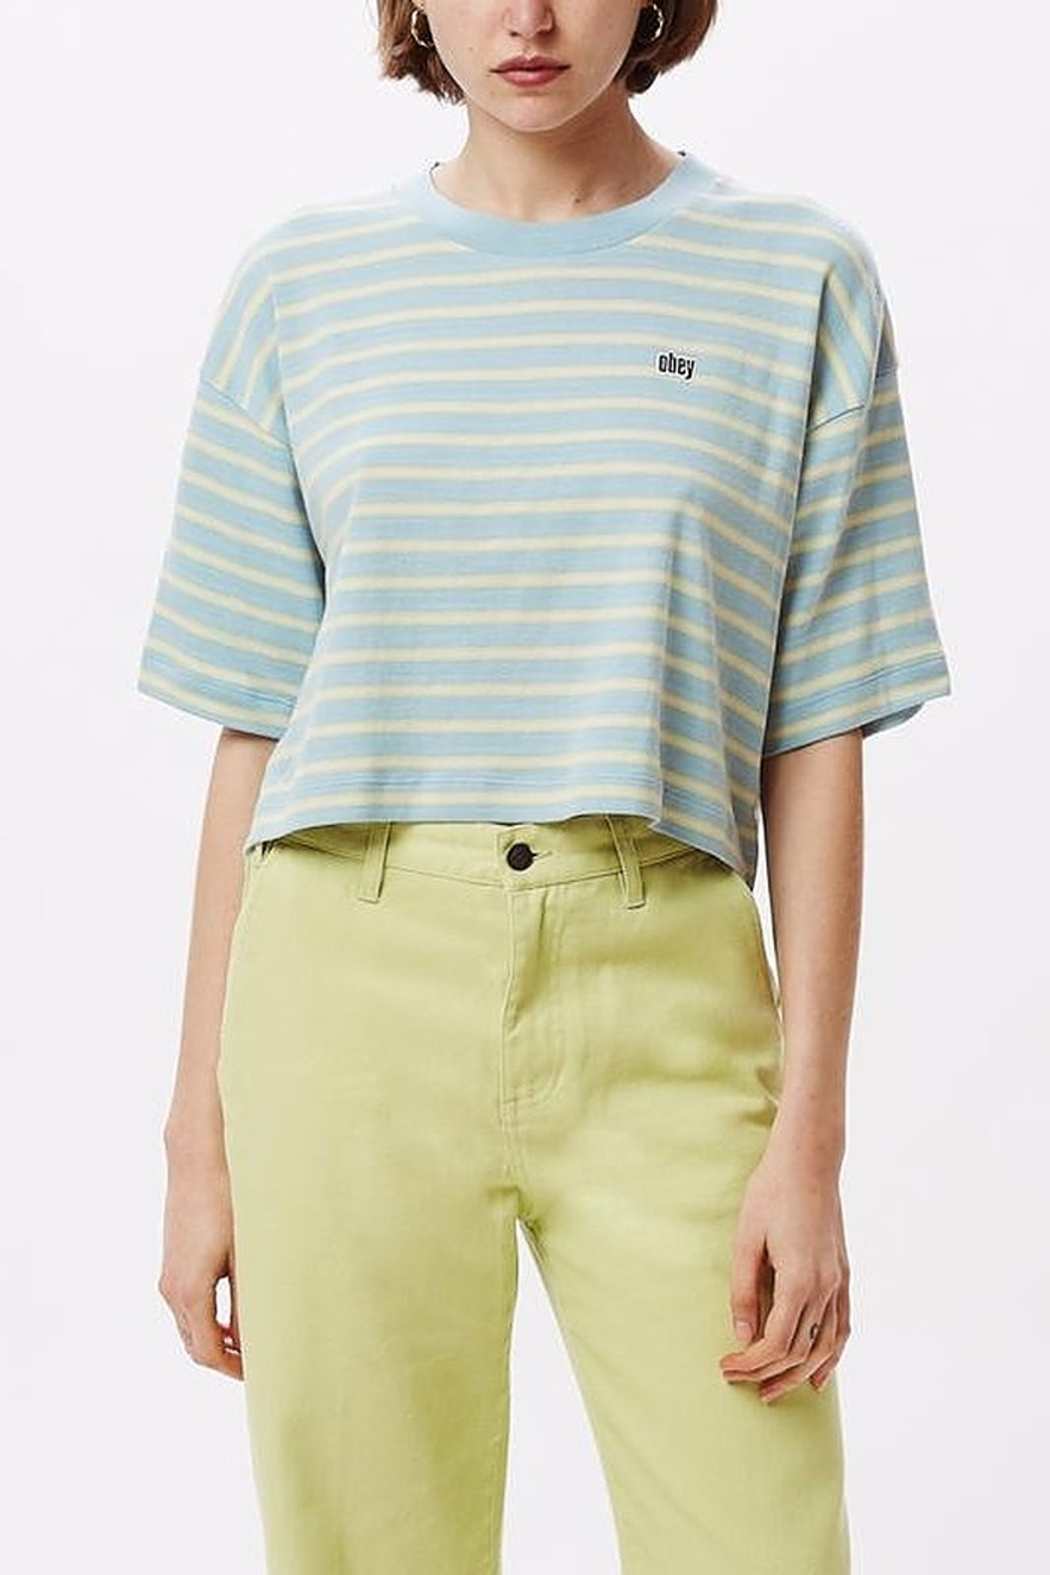 Obey Striped Crop Top - Front Cropped Image